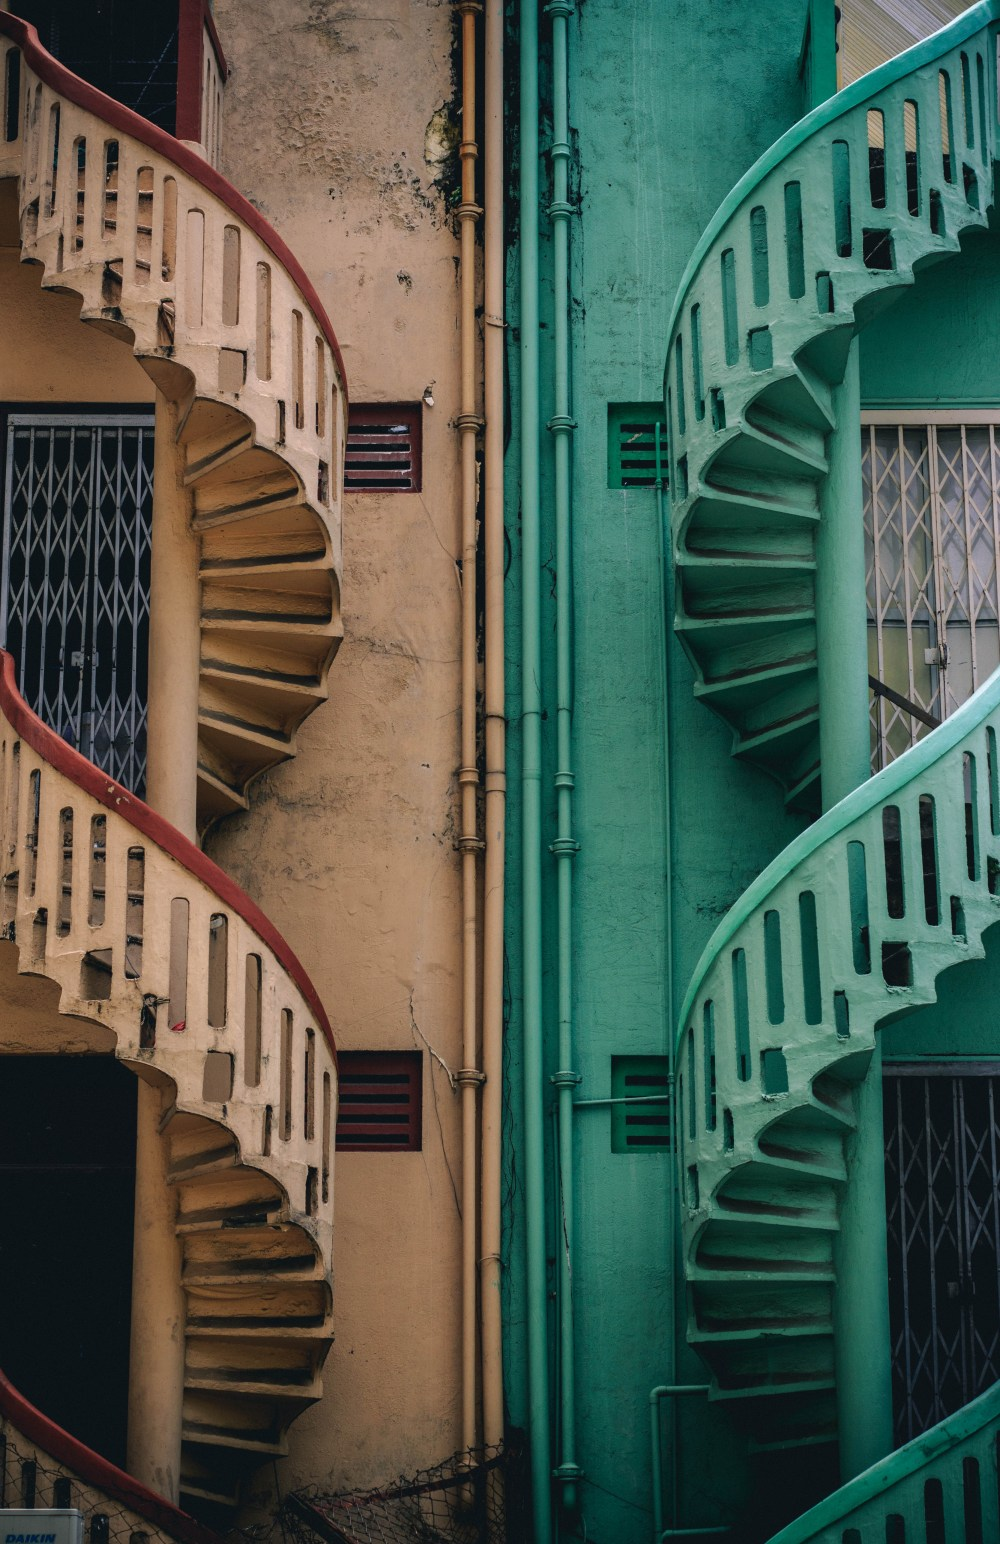 hight resolution of beige and green concrete spiral stairs beside building